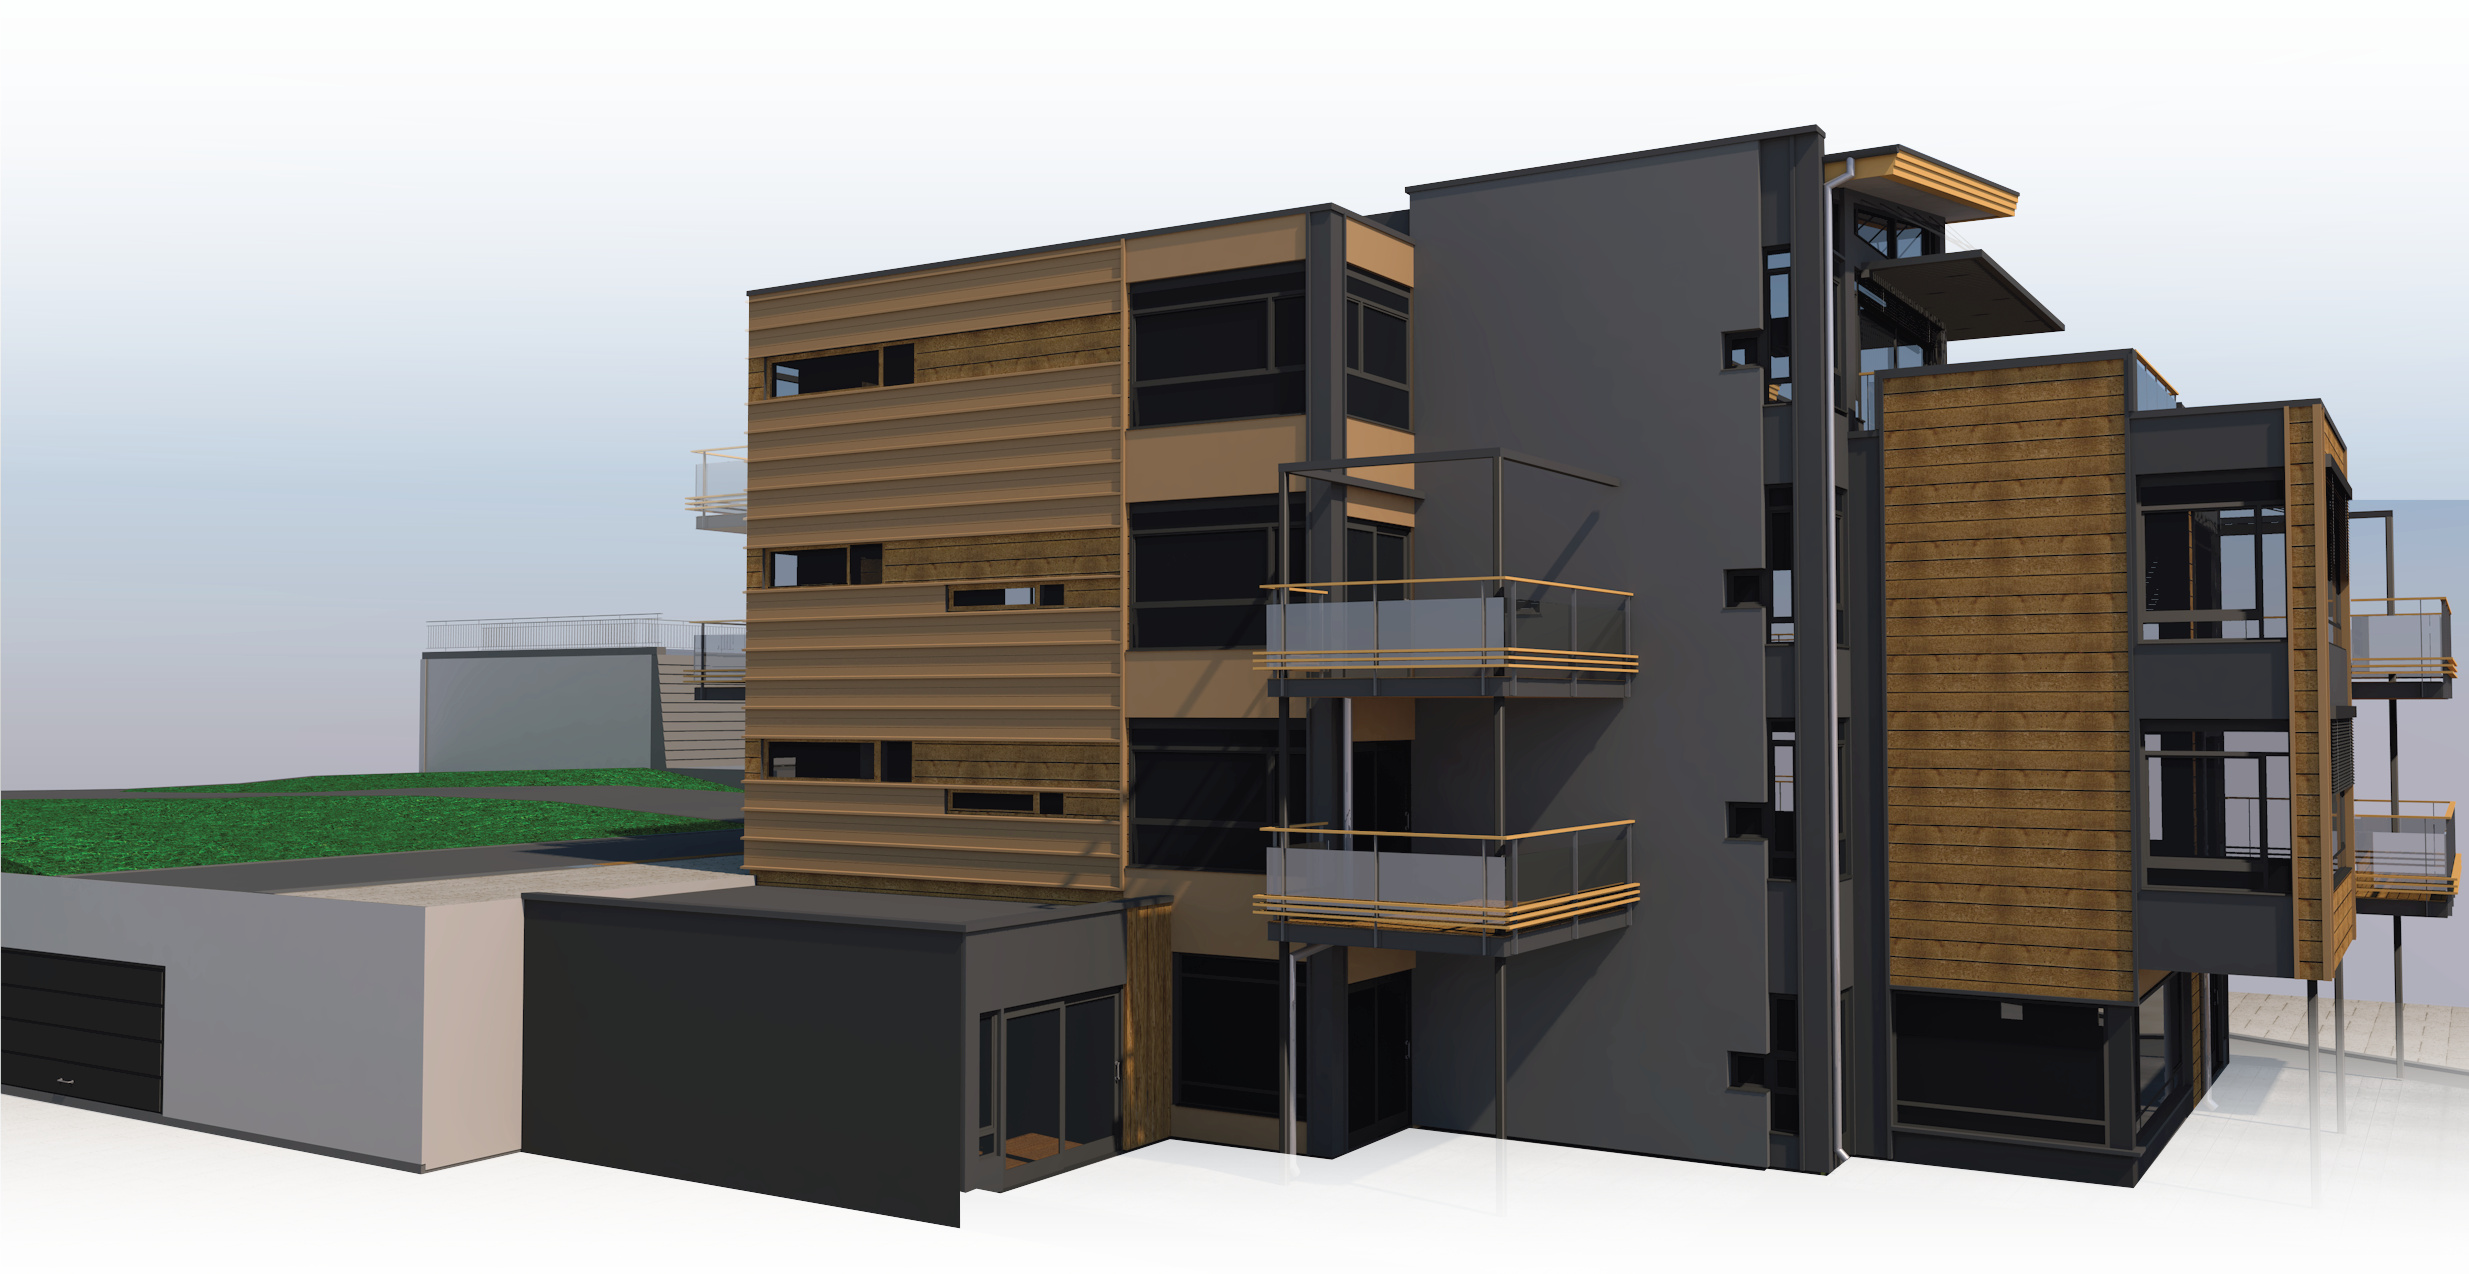 Top 10 of the best 3d modeling software for architecture for Wood house design software